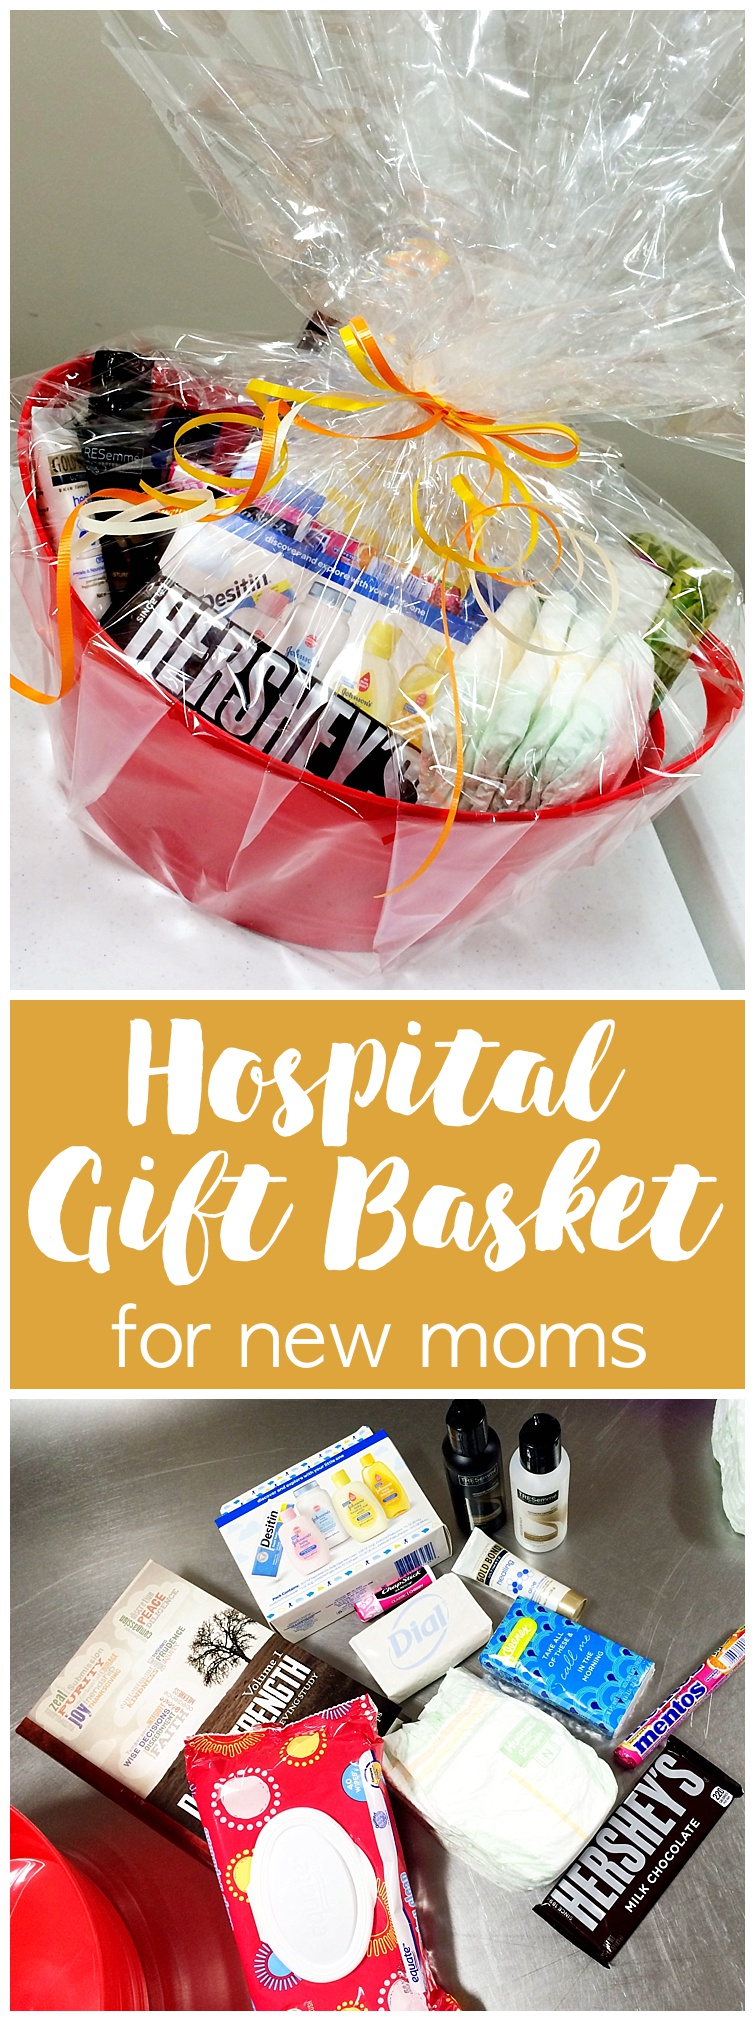 Are you looking for a way to reach out to your community? Or maybe you have a friend nearing time to give birth? These Hospital Gift Baskets are a wonderful ... & Hospital Gift Basket... for a new mom! - Six Clever Sisters